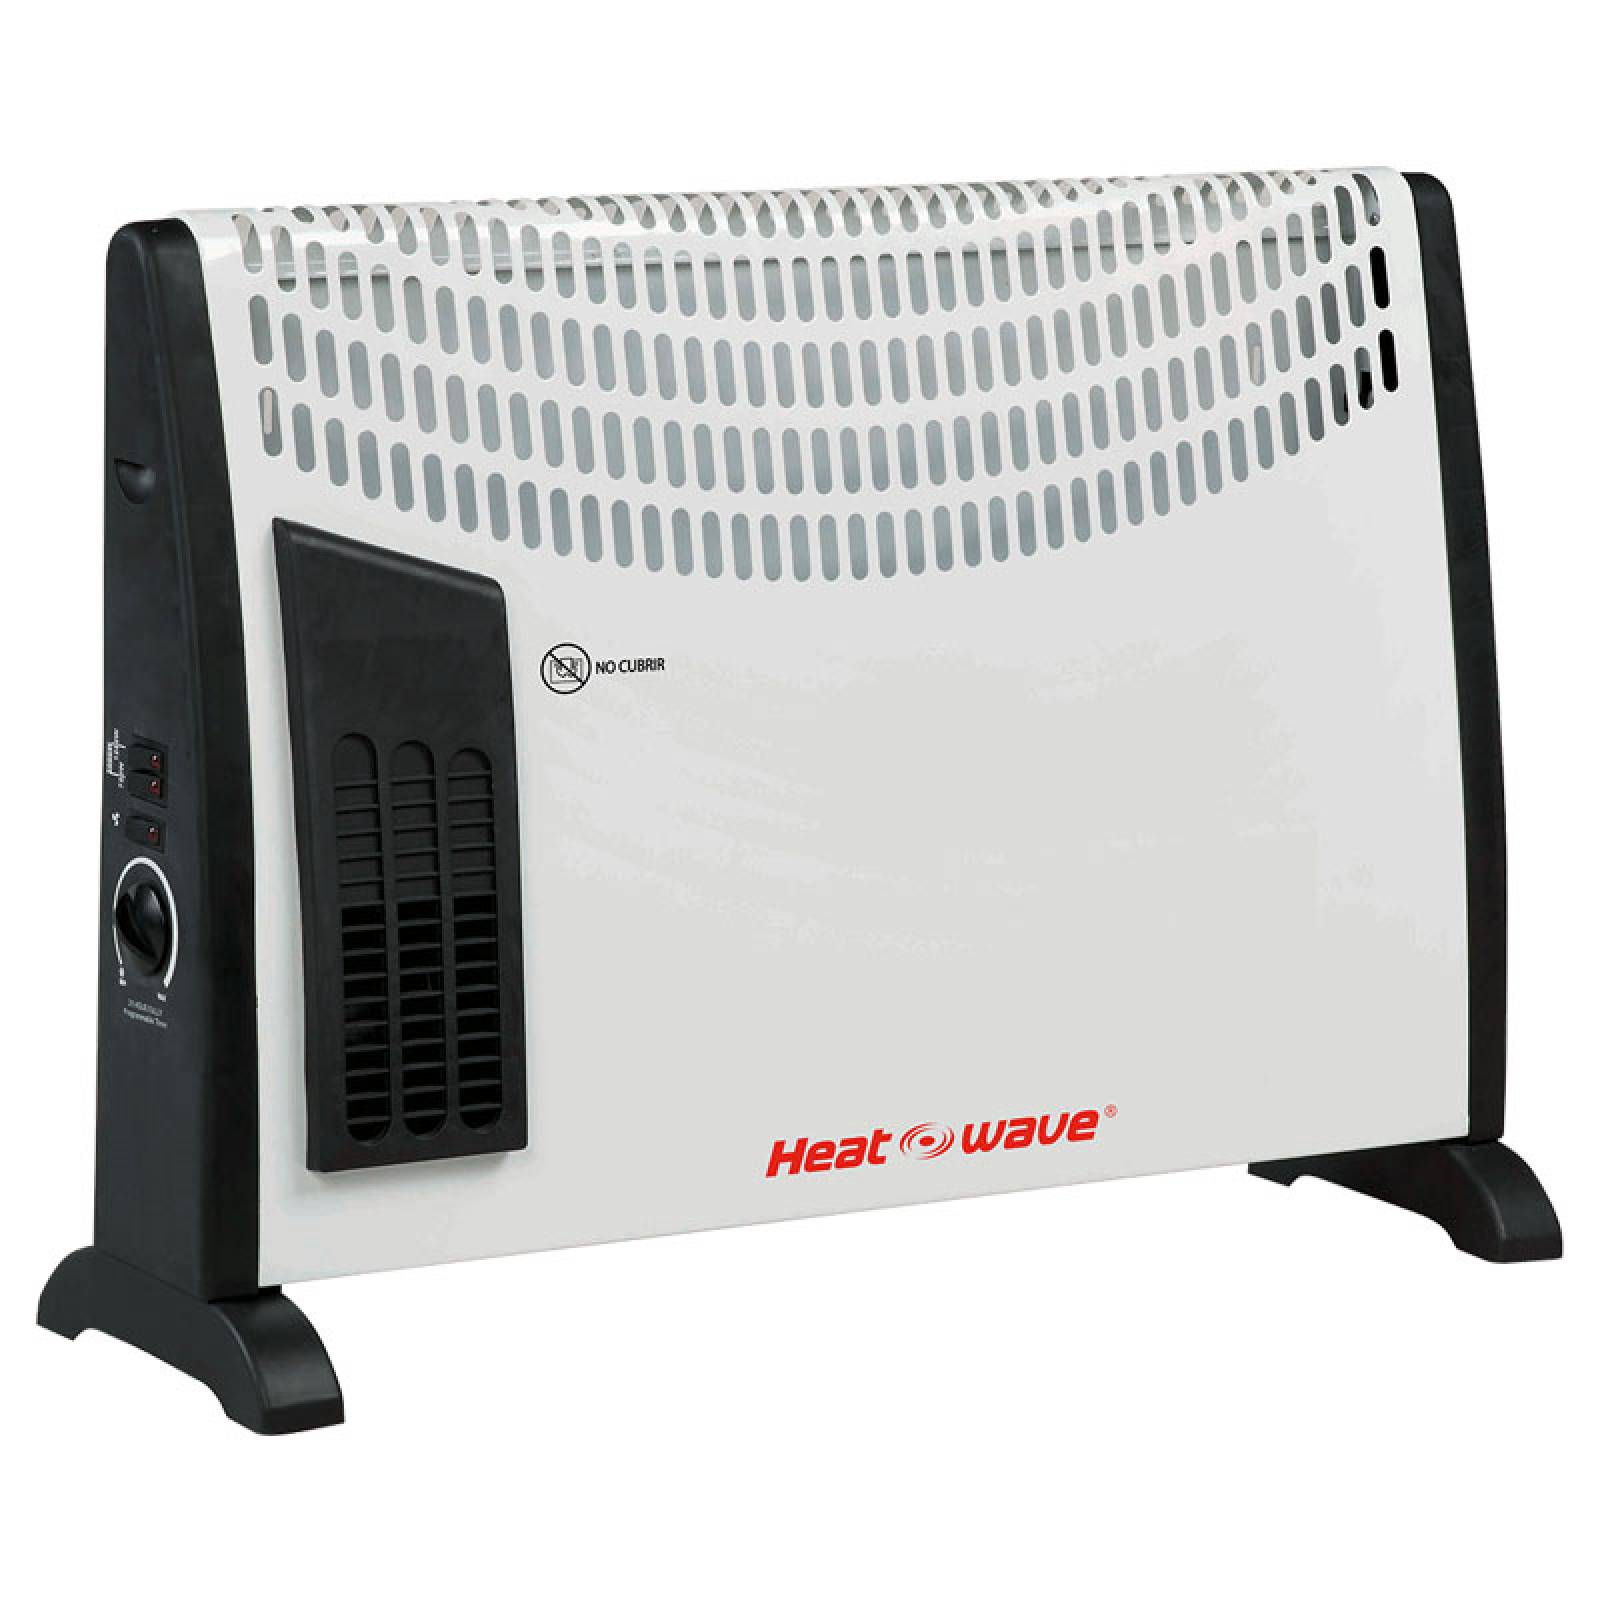 Calefactor Electrico Conveccion 1500 w Turbo Heat Wave